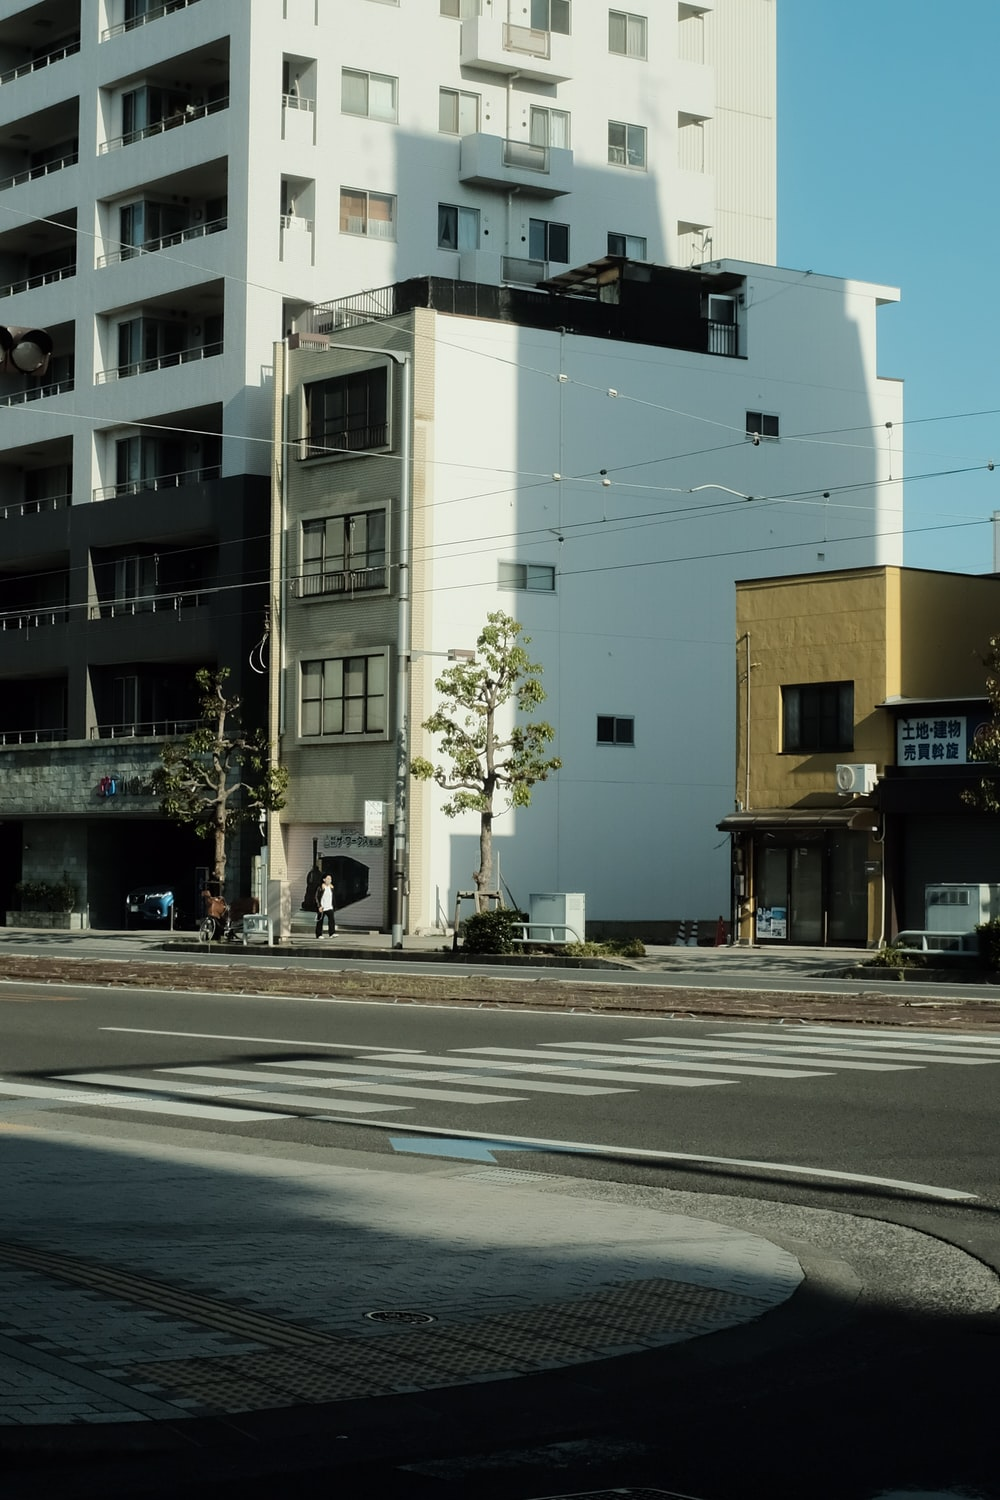 white and black concrete building beside road during daytime